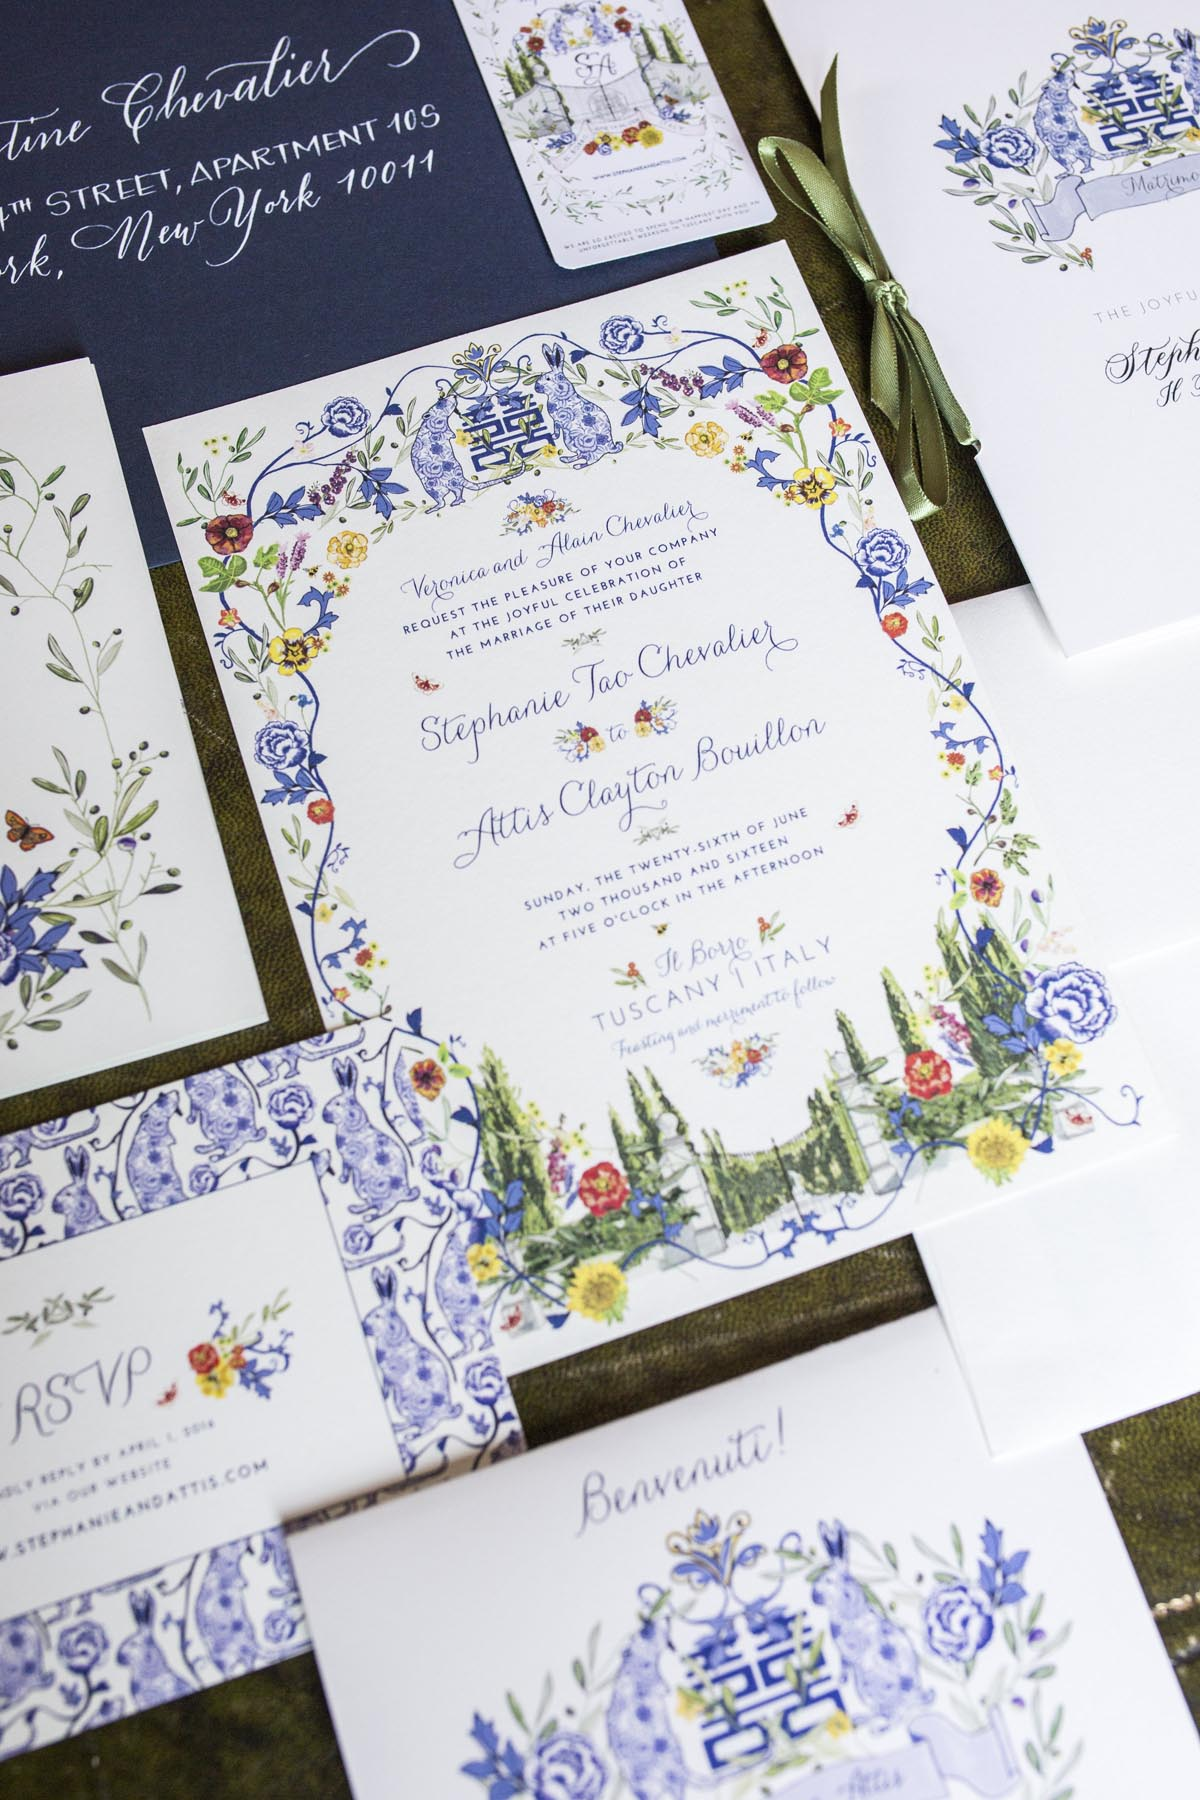 Tuscany-wedding-invitation-printed-paper-suite-with-blue-and-white-chinese-print-motif-mixed-with-tuscan-cypress-tress